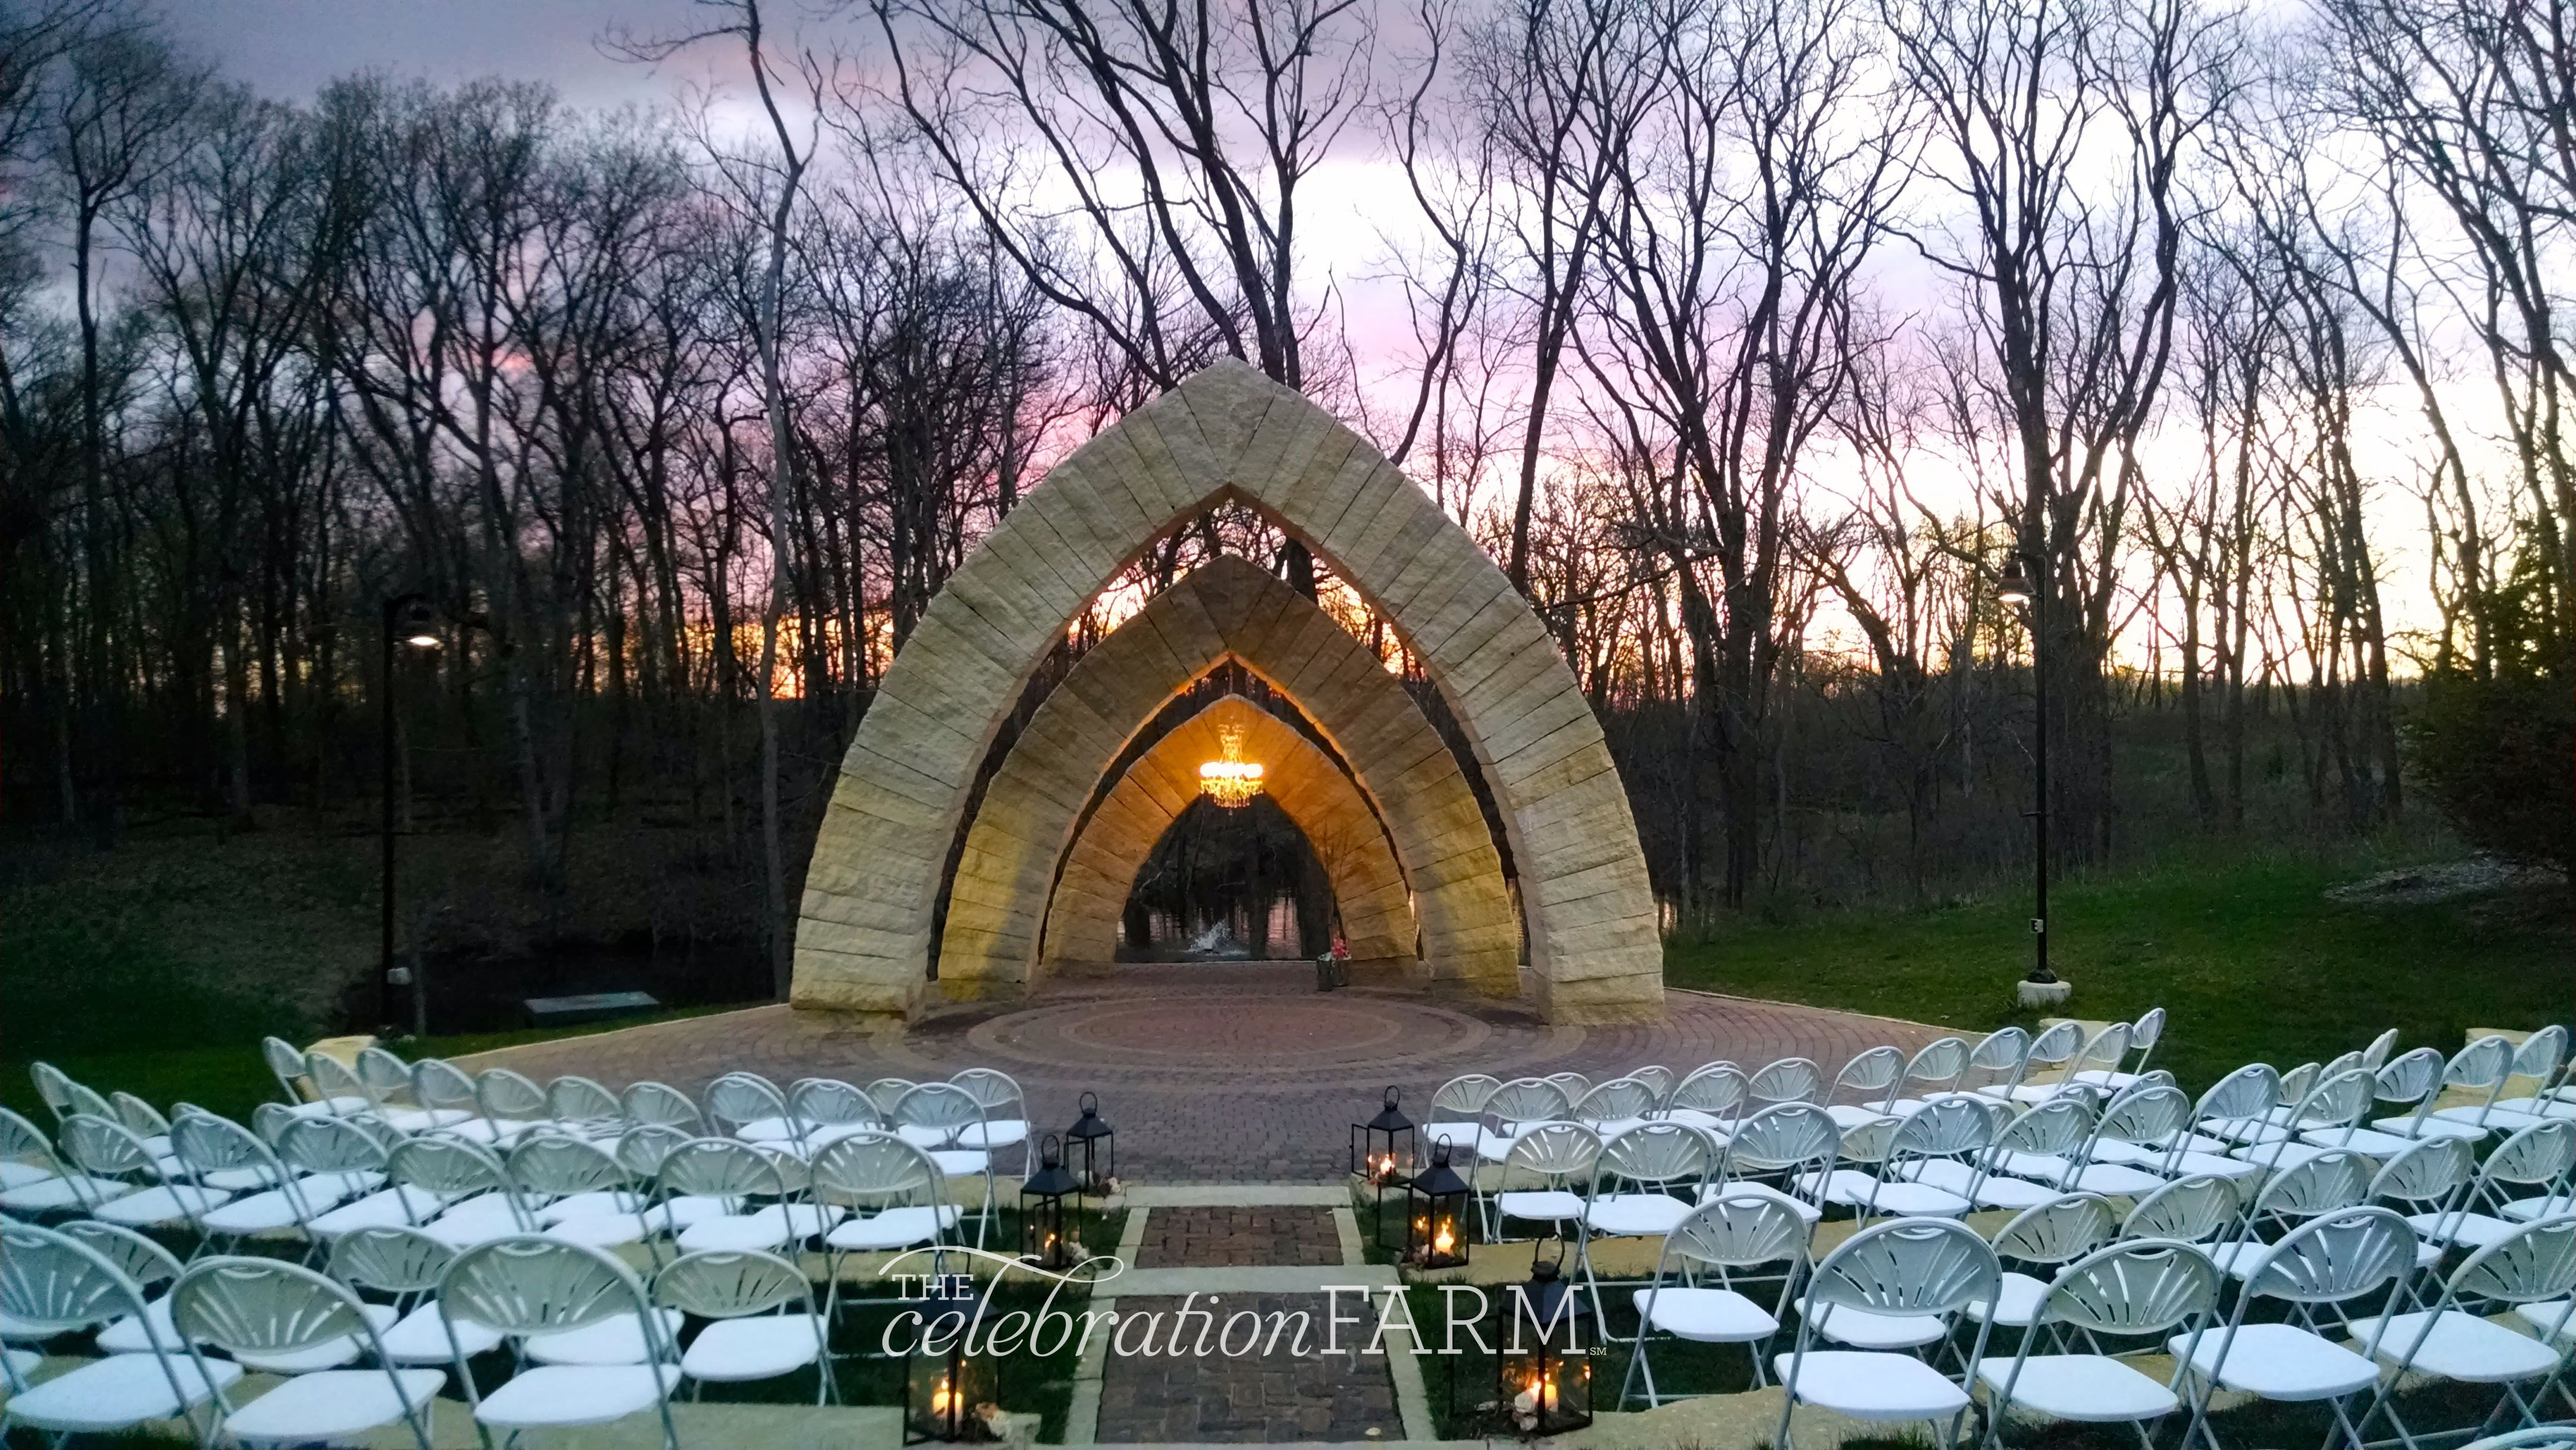 #Lanterns light the way to the #outdooramphitheater at #sunset at @celebrationfarm. #thecelebrationfarm  What a beautiful space to #exchangevows! #iowawedding #iowacity #wedding #diywedding #outdoorwedding #celebrationfarm